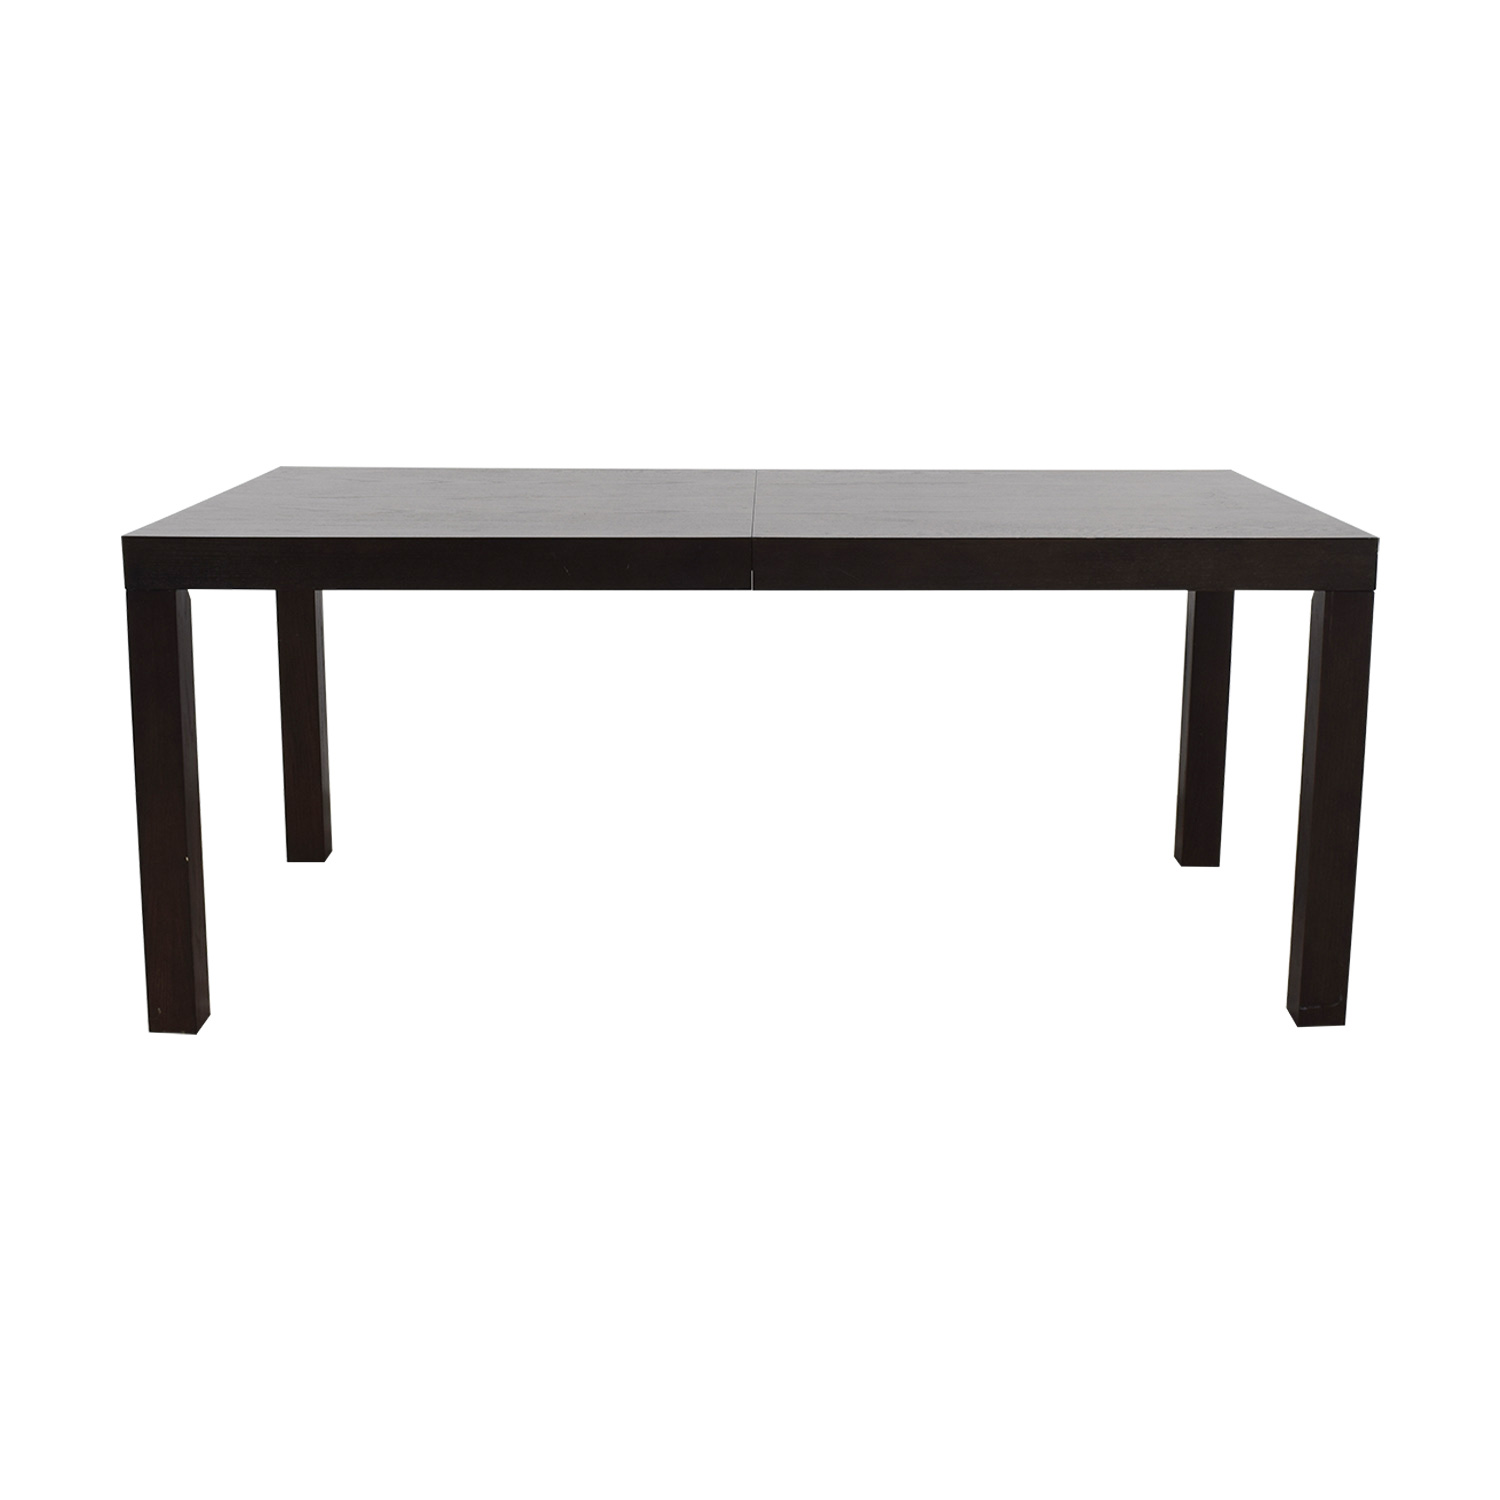 West Elm West Elm Farmhouse Dining Table